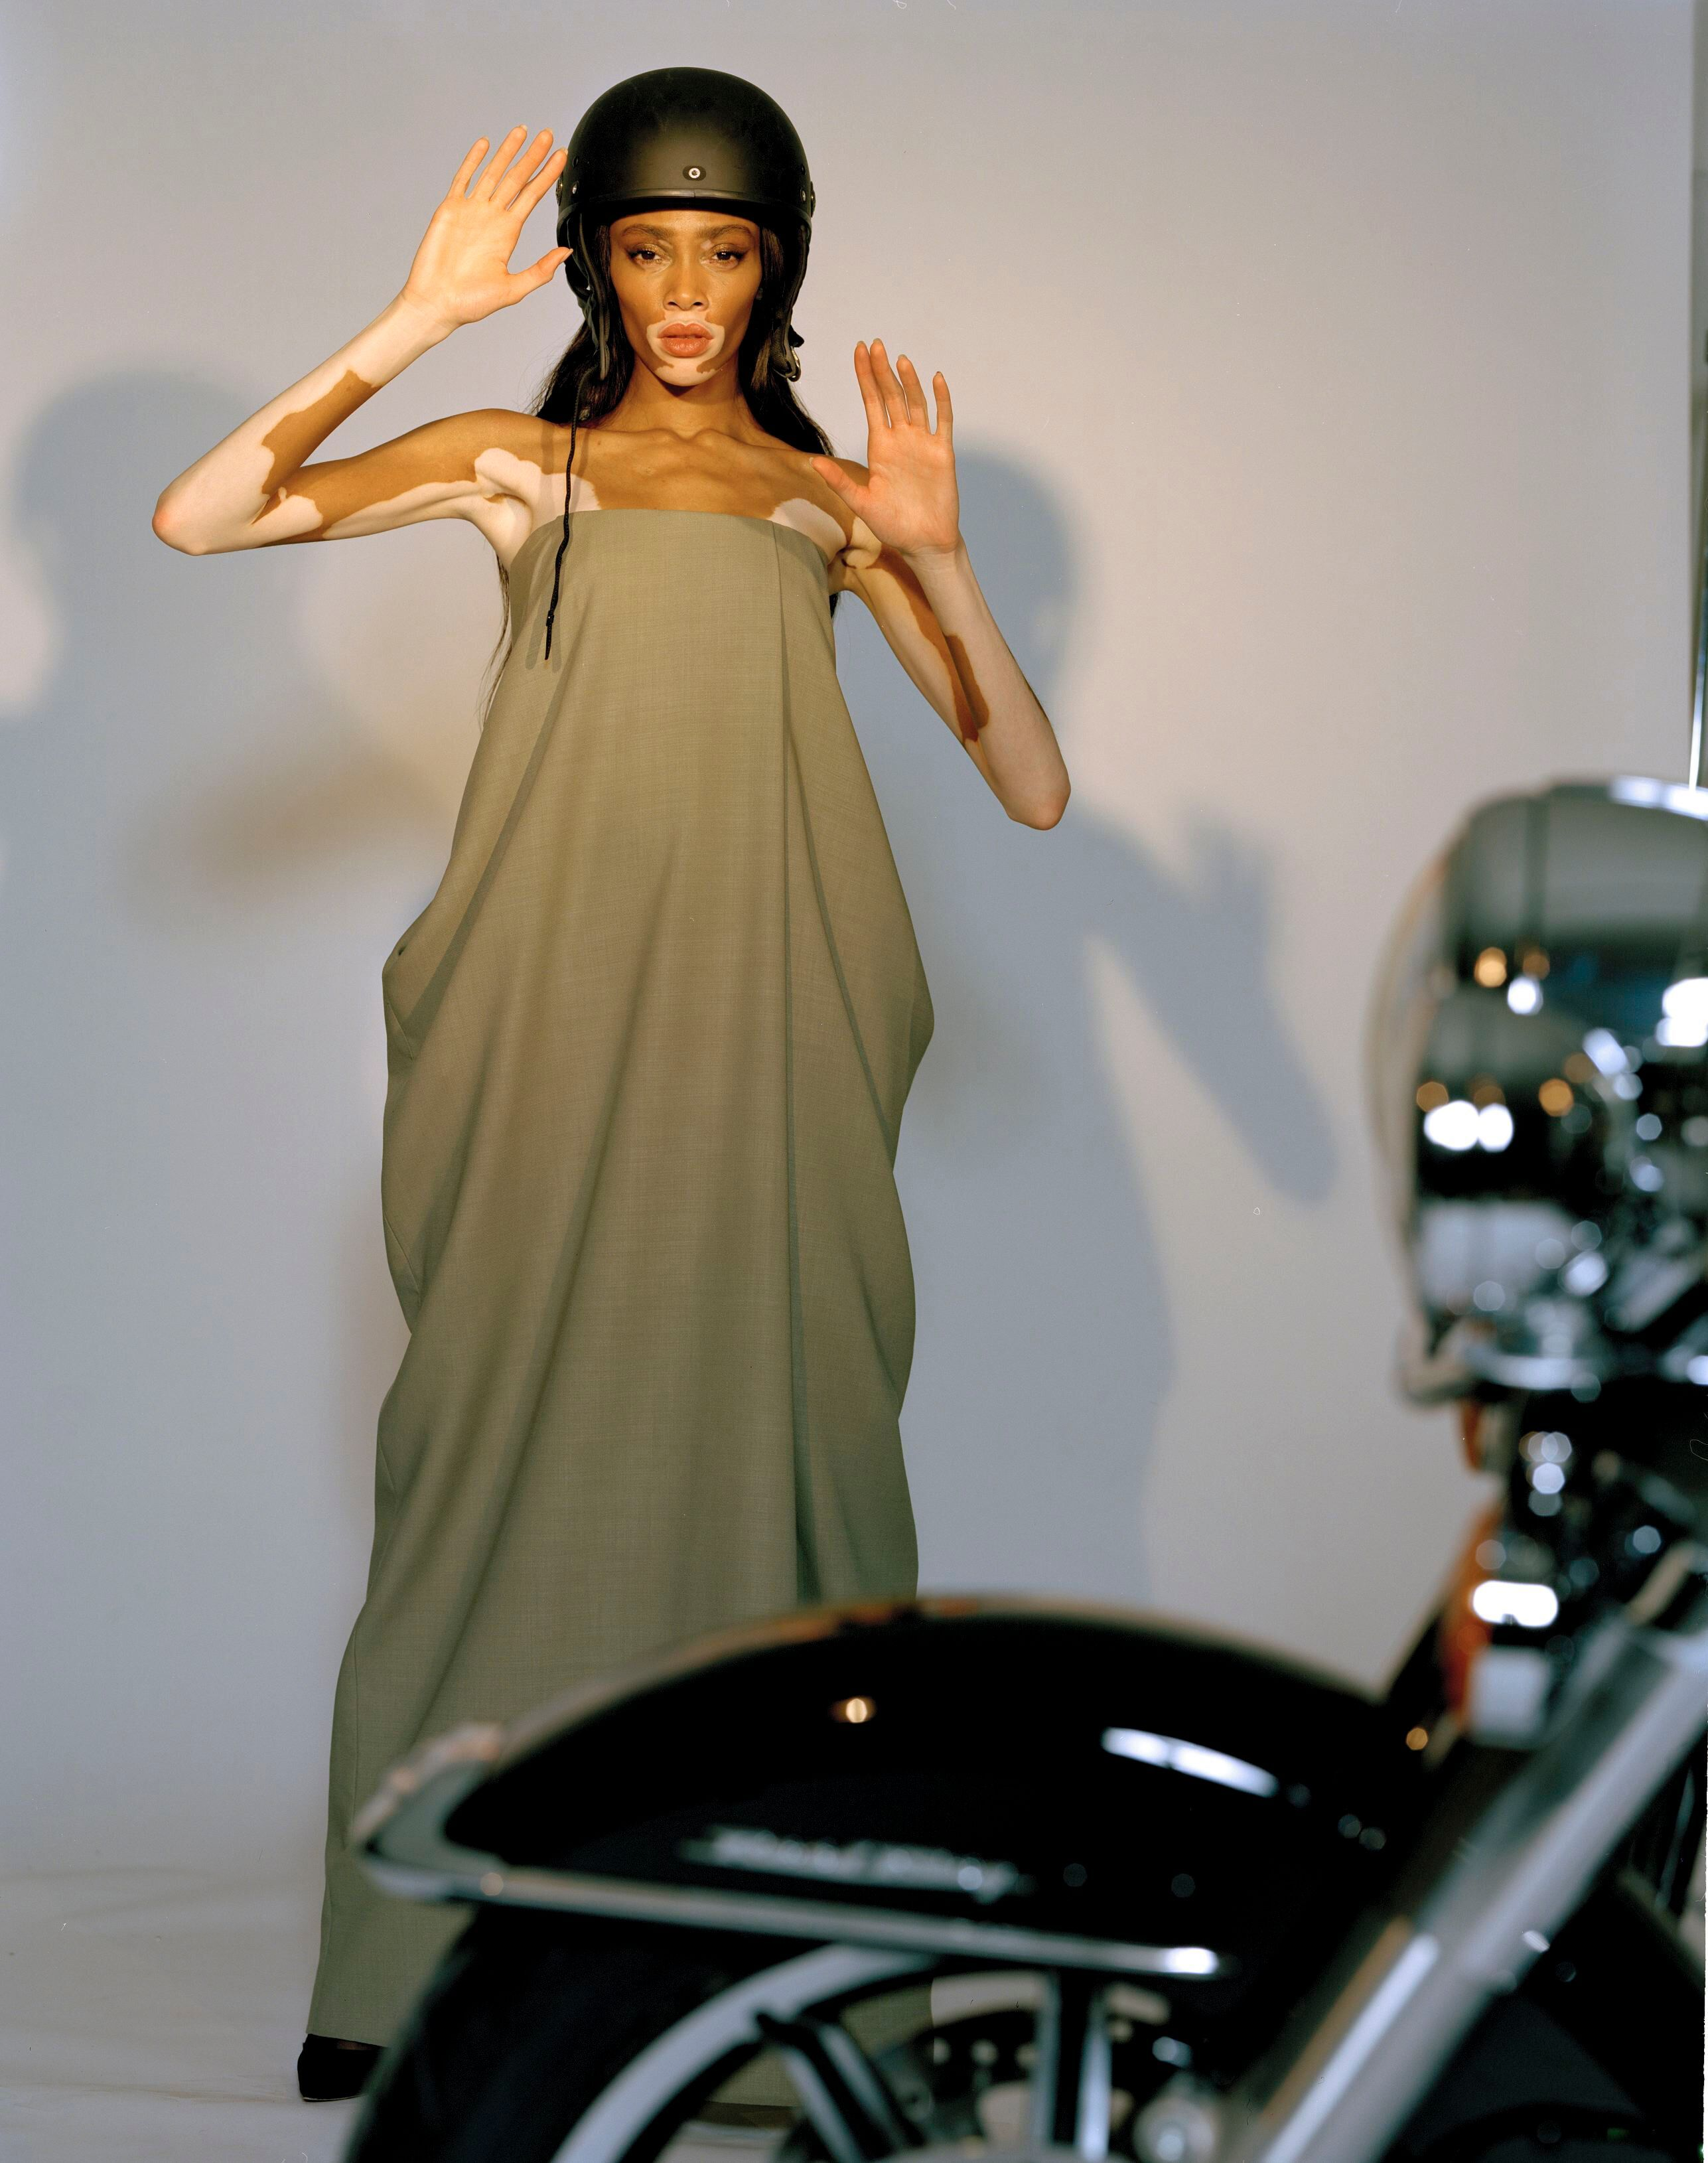 Vroom Vroom, Winnie Harlow Revs Out of New York Fashion Week